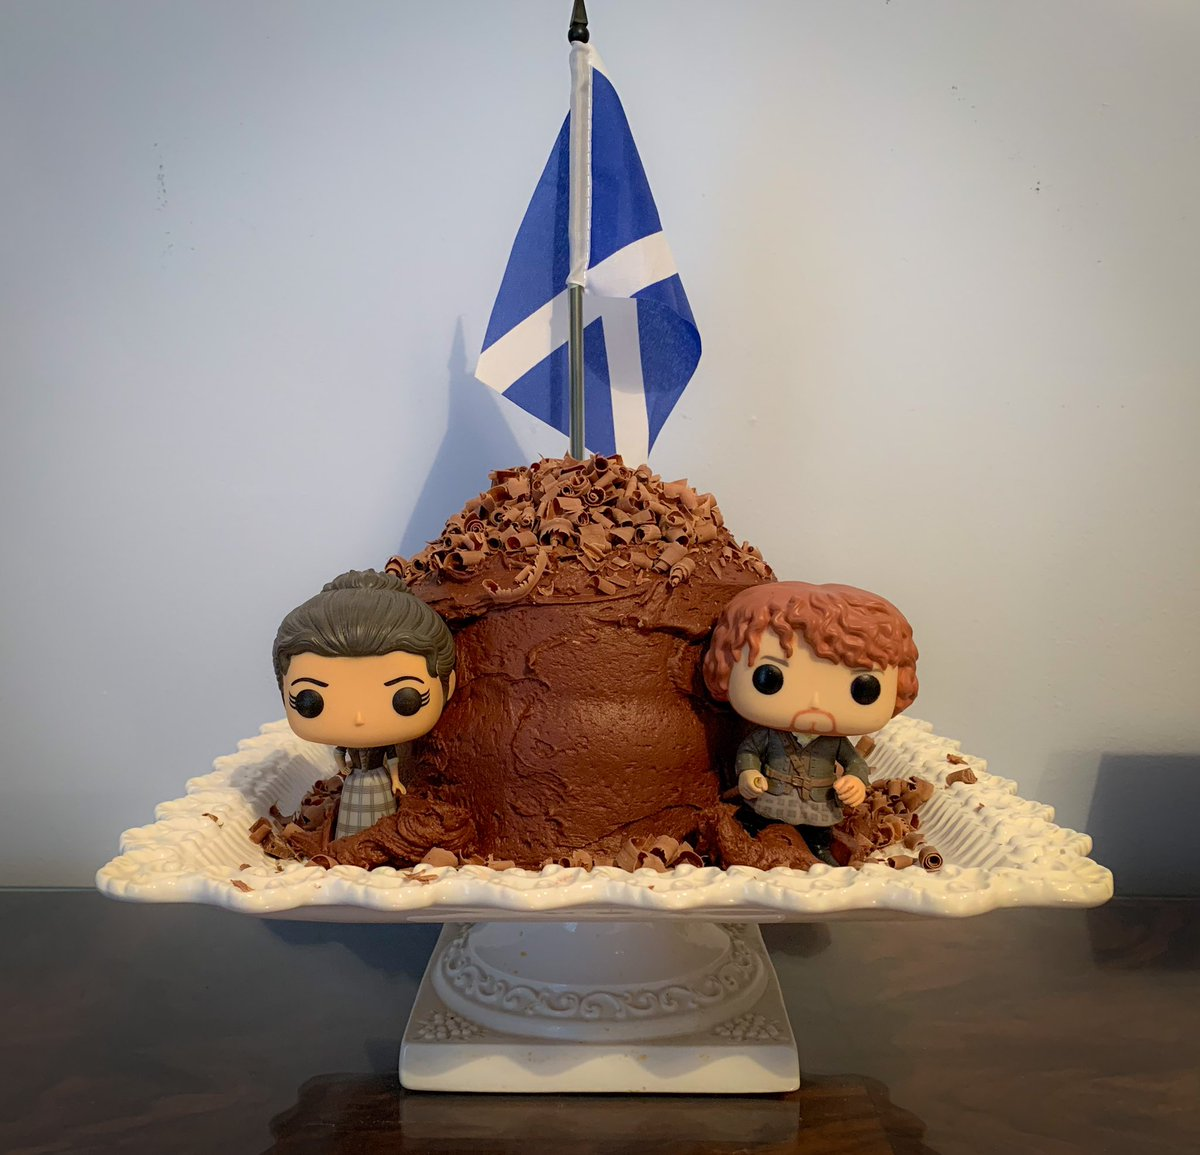 Getting ready to transport this #betterthanjamiechocolatecake to our season 5 premiere watch party! #Outlander #TheMacKenzies #TheFrasers #RogerAndBree